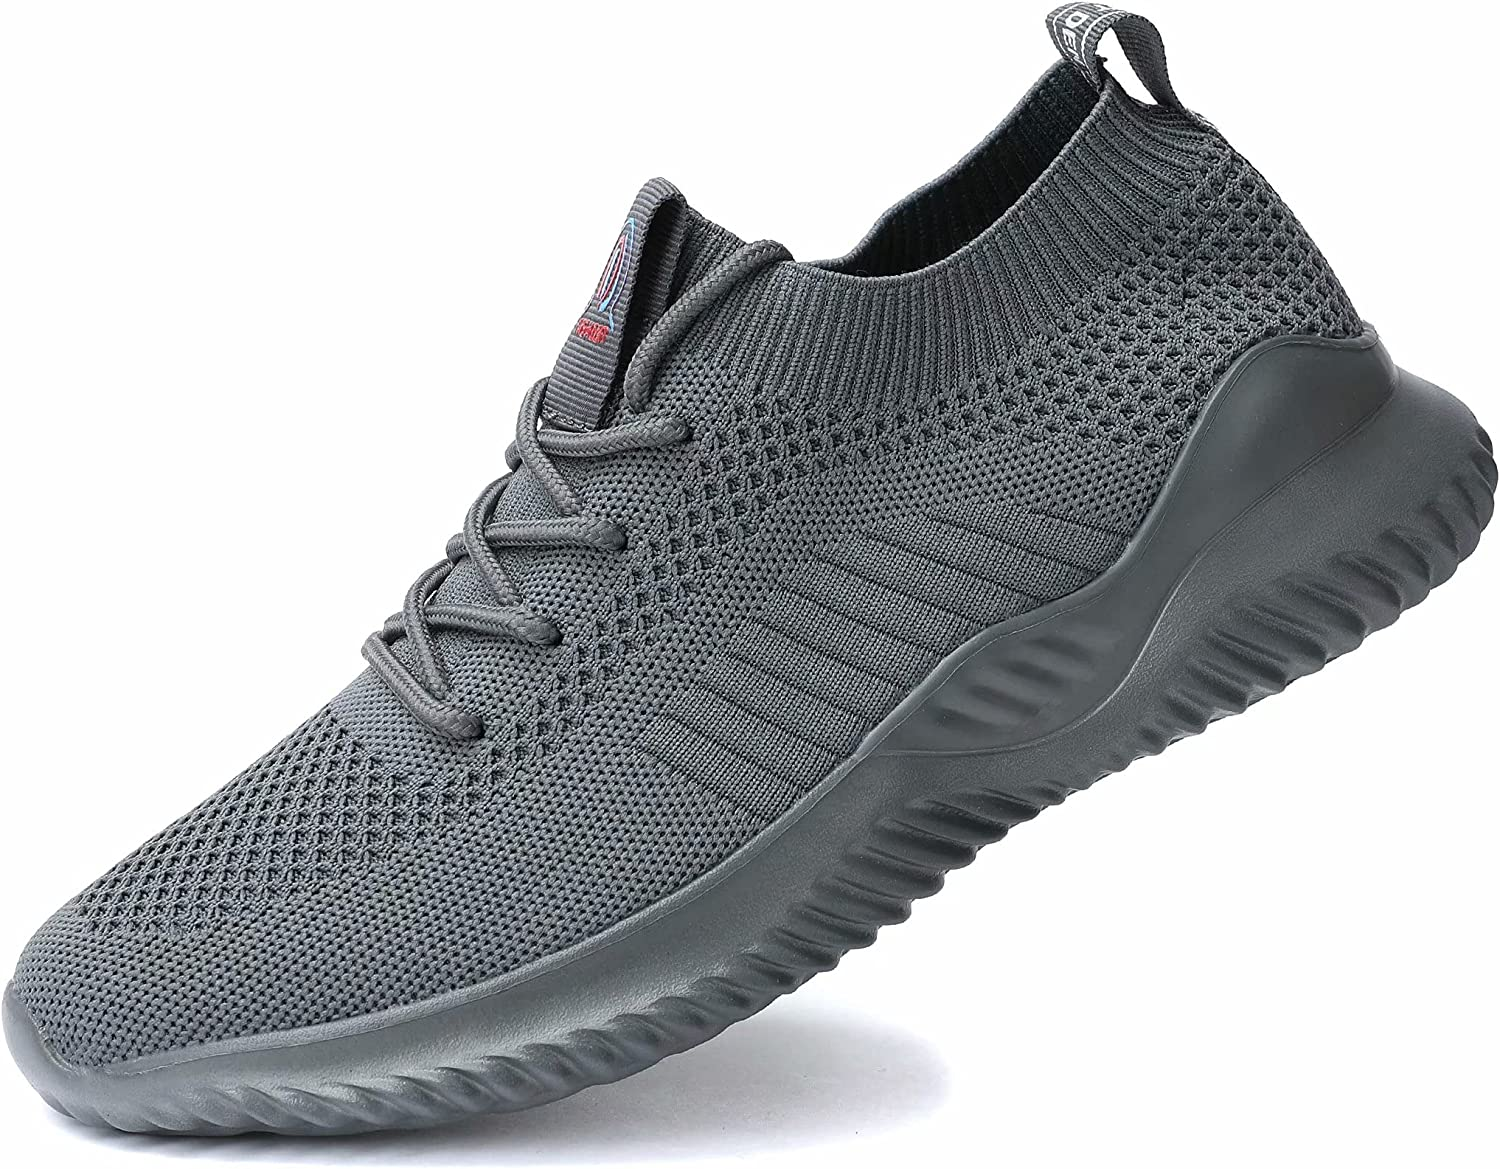 Mens Running Shoes Slip on Walking Tennis Sneakers Fashion Breathable Mesh Soft Sole Casual Lightweight Trainers